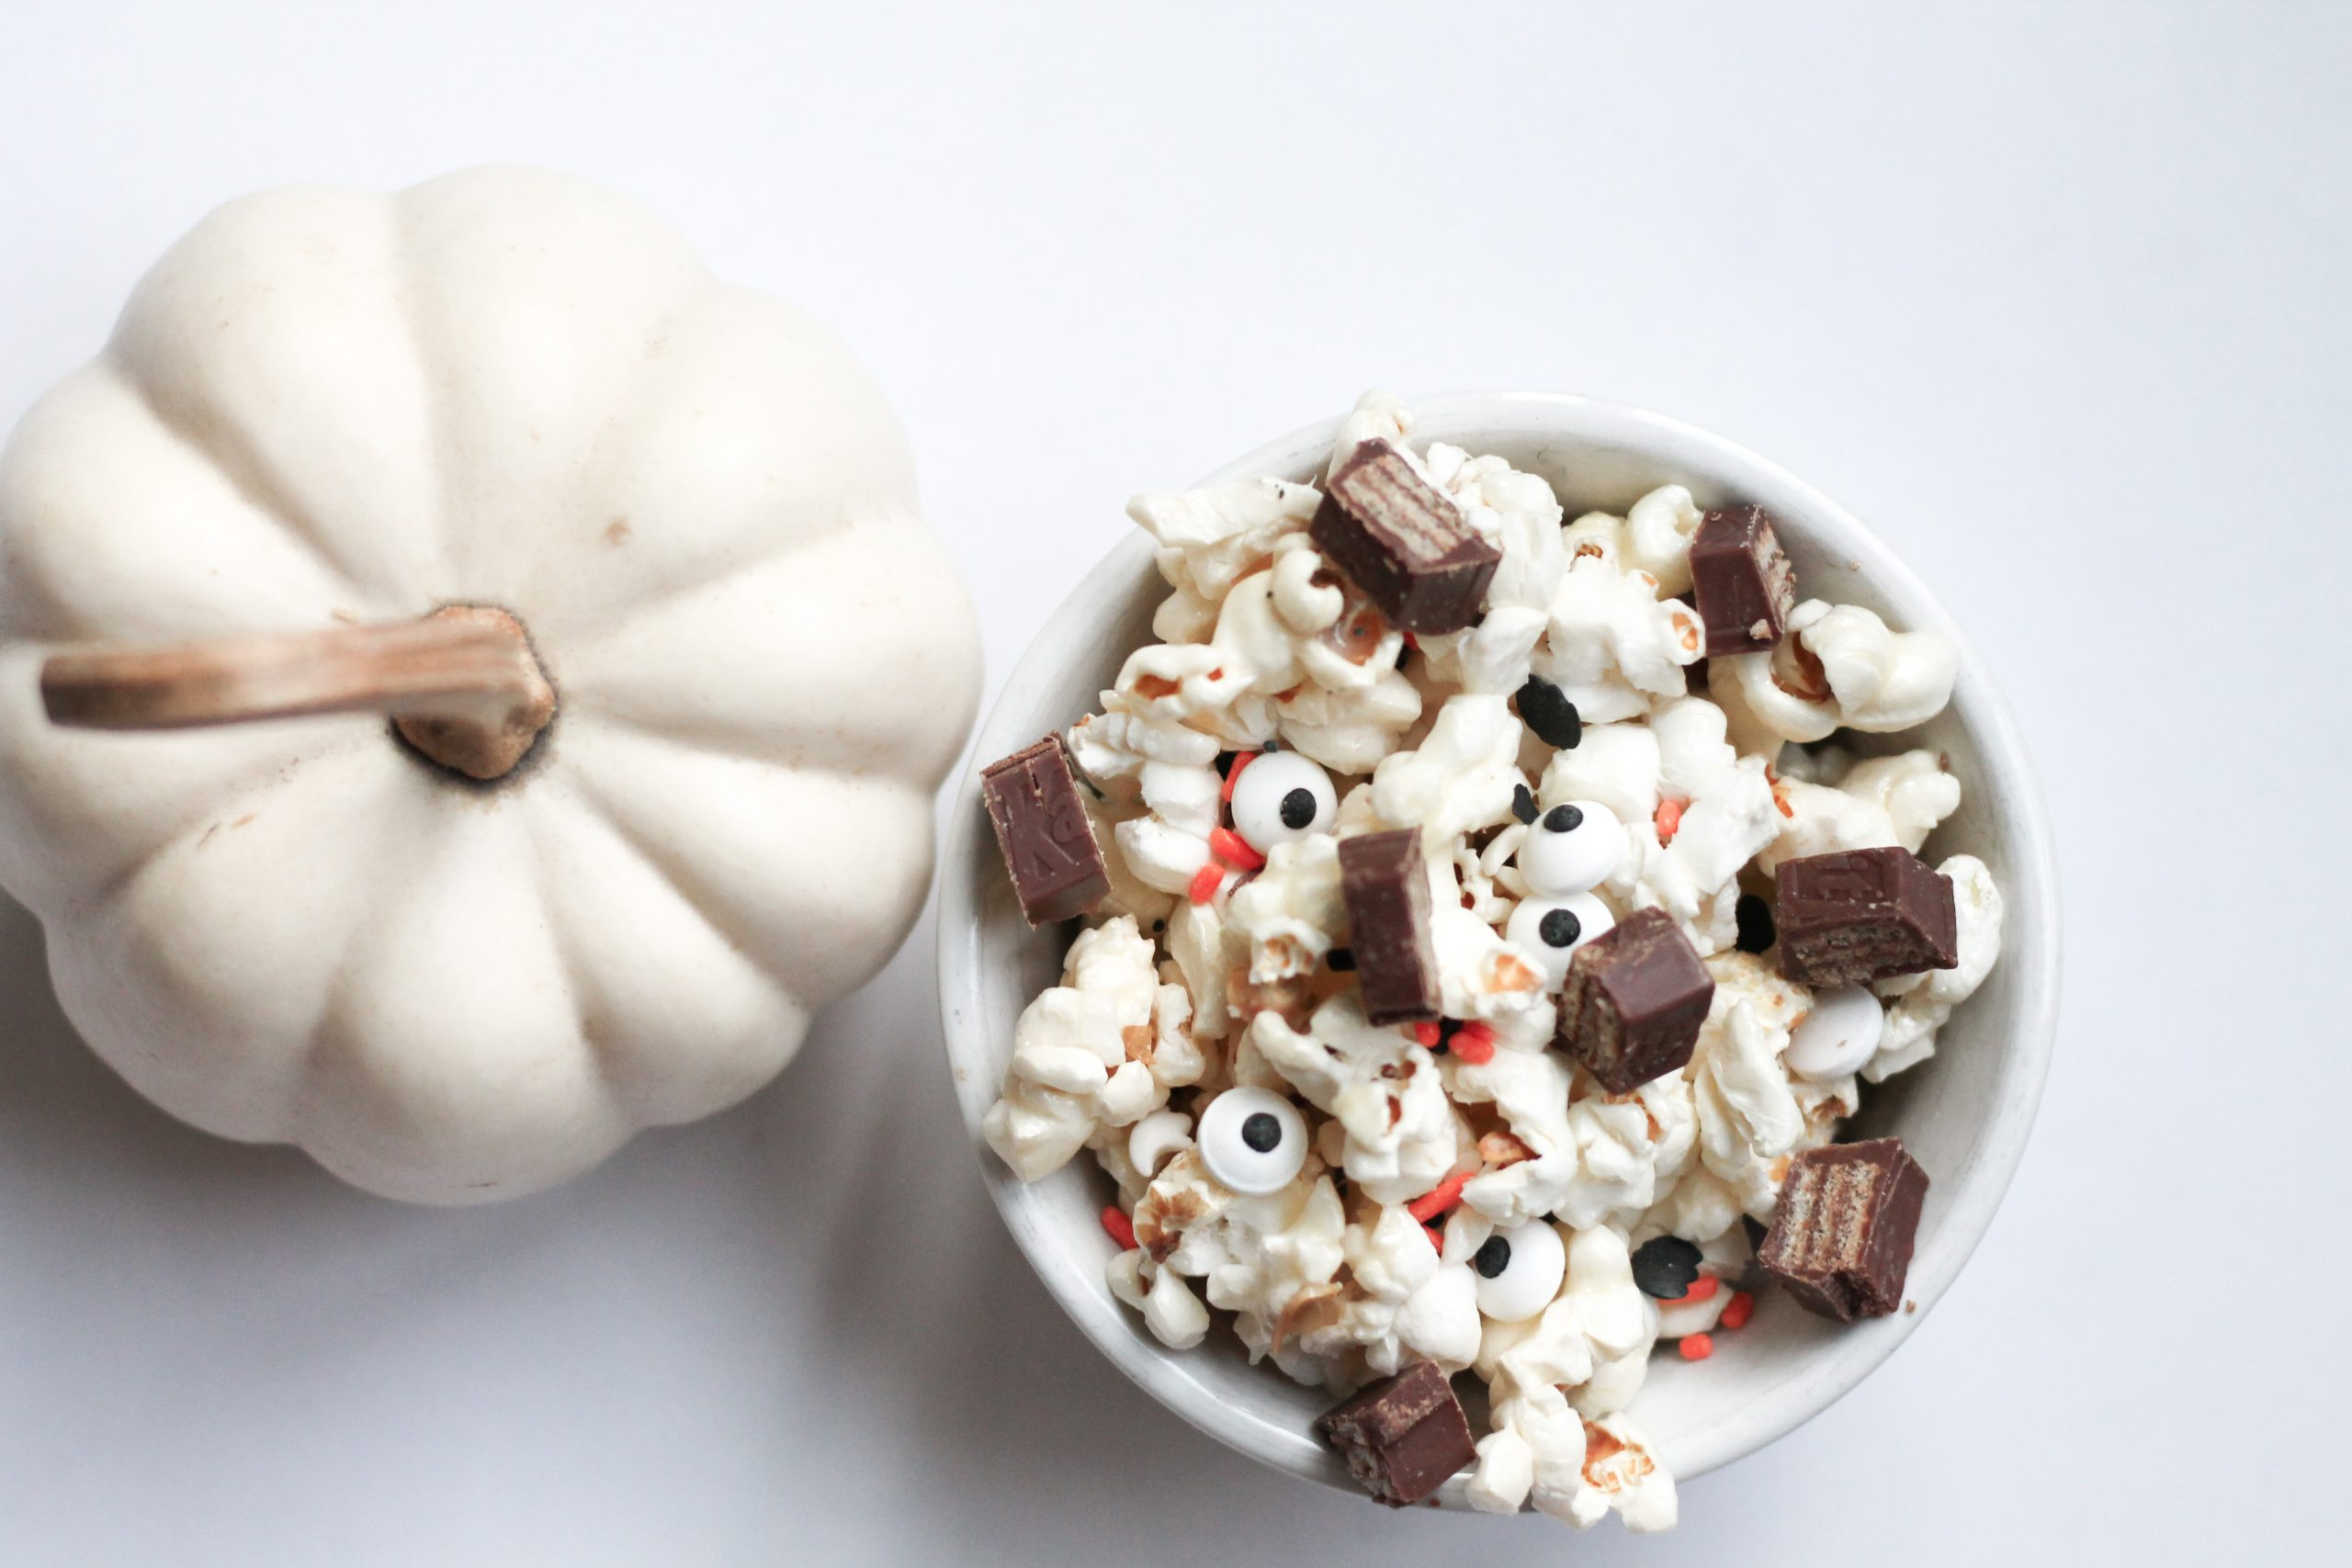 Spooky popcorn chocolate